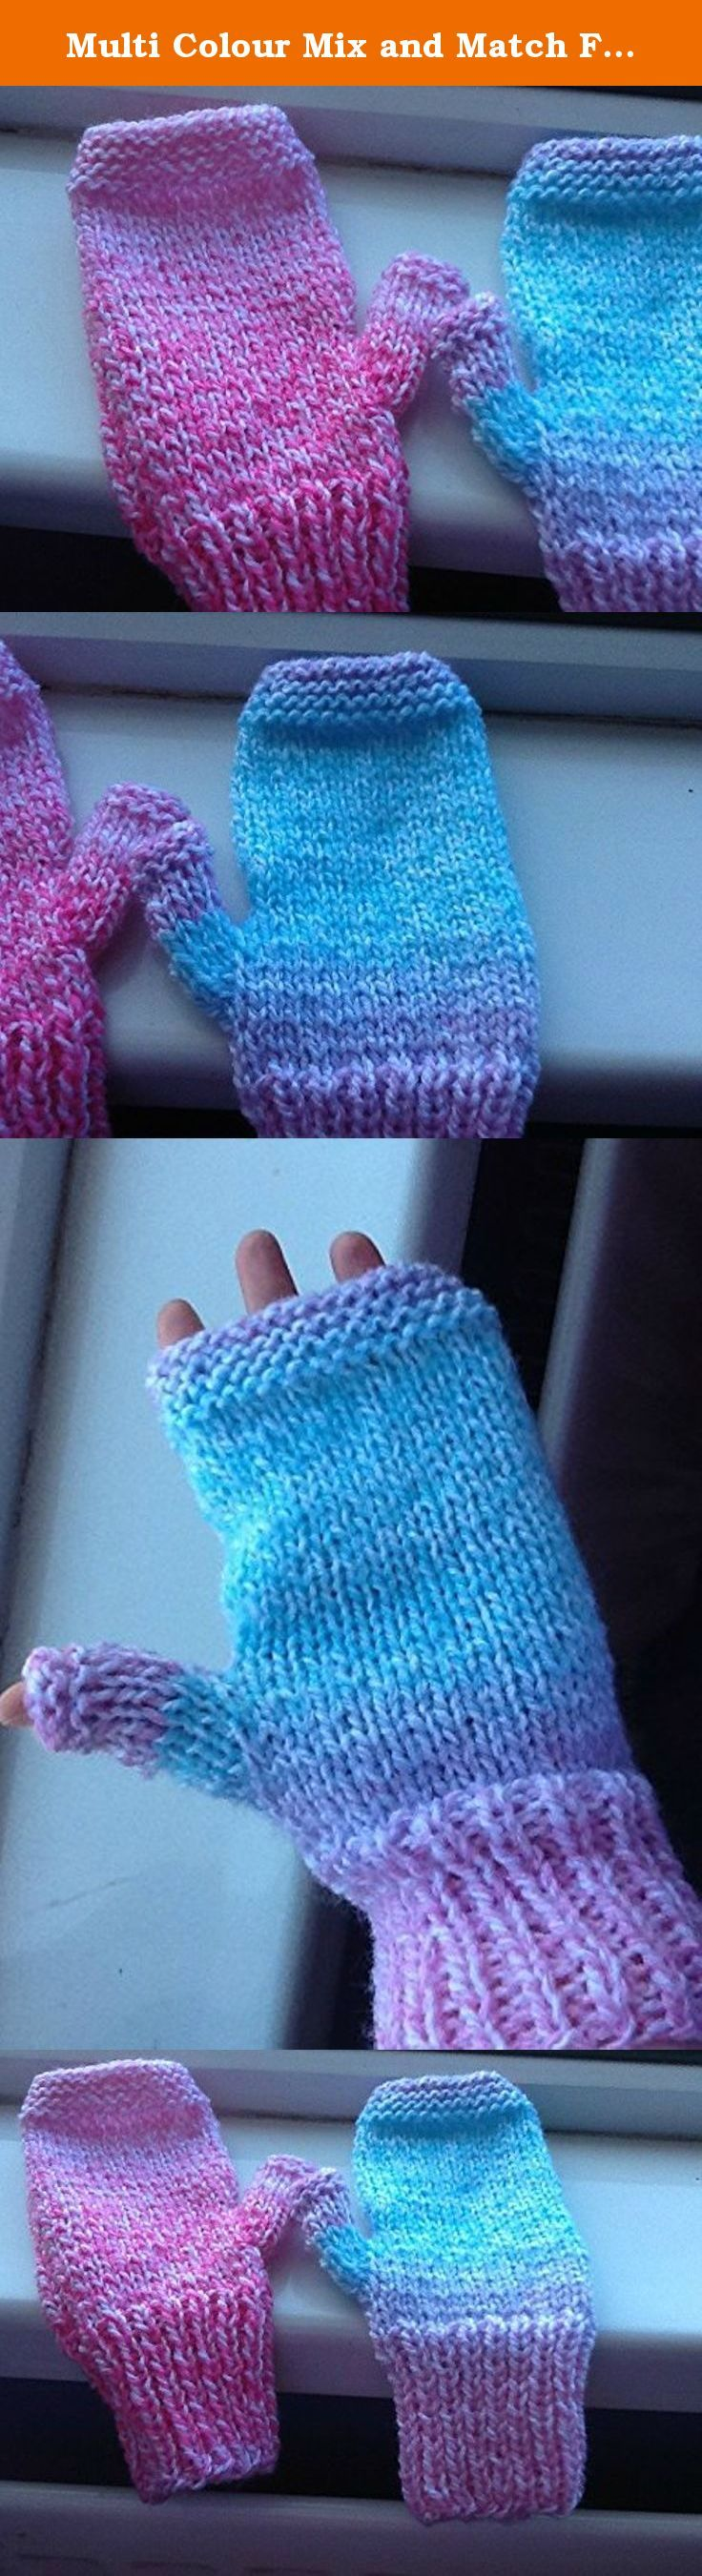 Multi Colour Mix and Match Fingerless Gloves. These adorable and colourful mix and match gloves are perfect for keeping your hands warm while out running, doing errands, or while out on a day trip. They would also make a beautiful gift. I hand knit these gloves using double knit yarn. Each glove is different - one is mainly pink and white whereas the other one is pink, purple and blue with white throughout. There is a little thumb gusset on each hand to provide a little extra heat. Each...